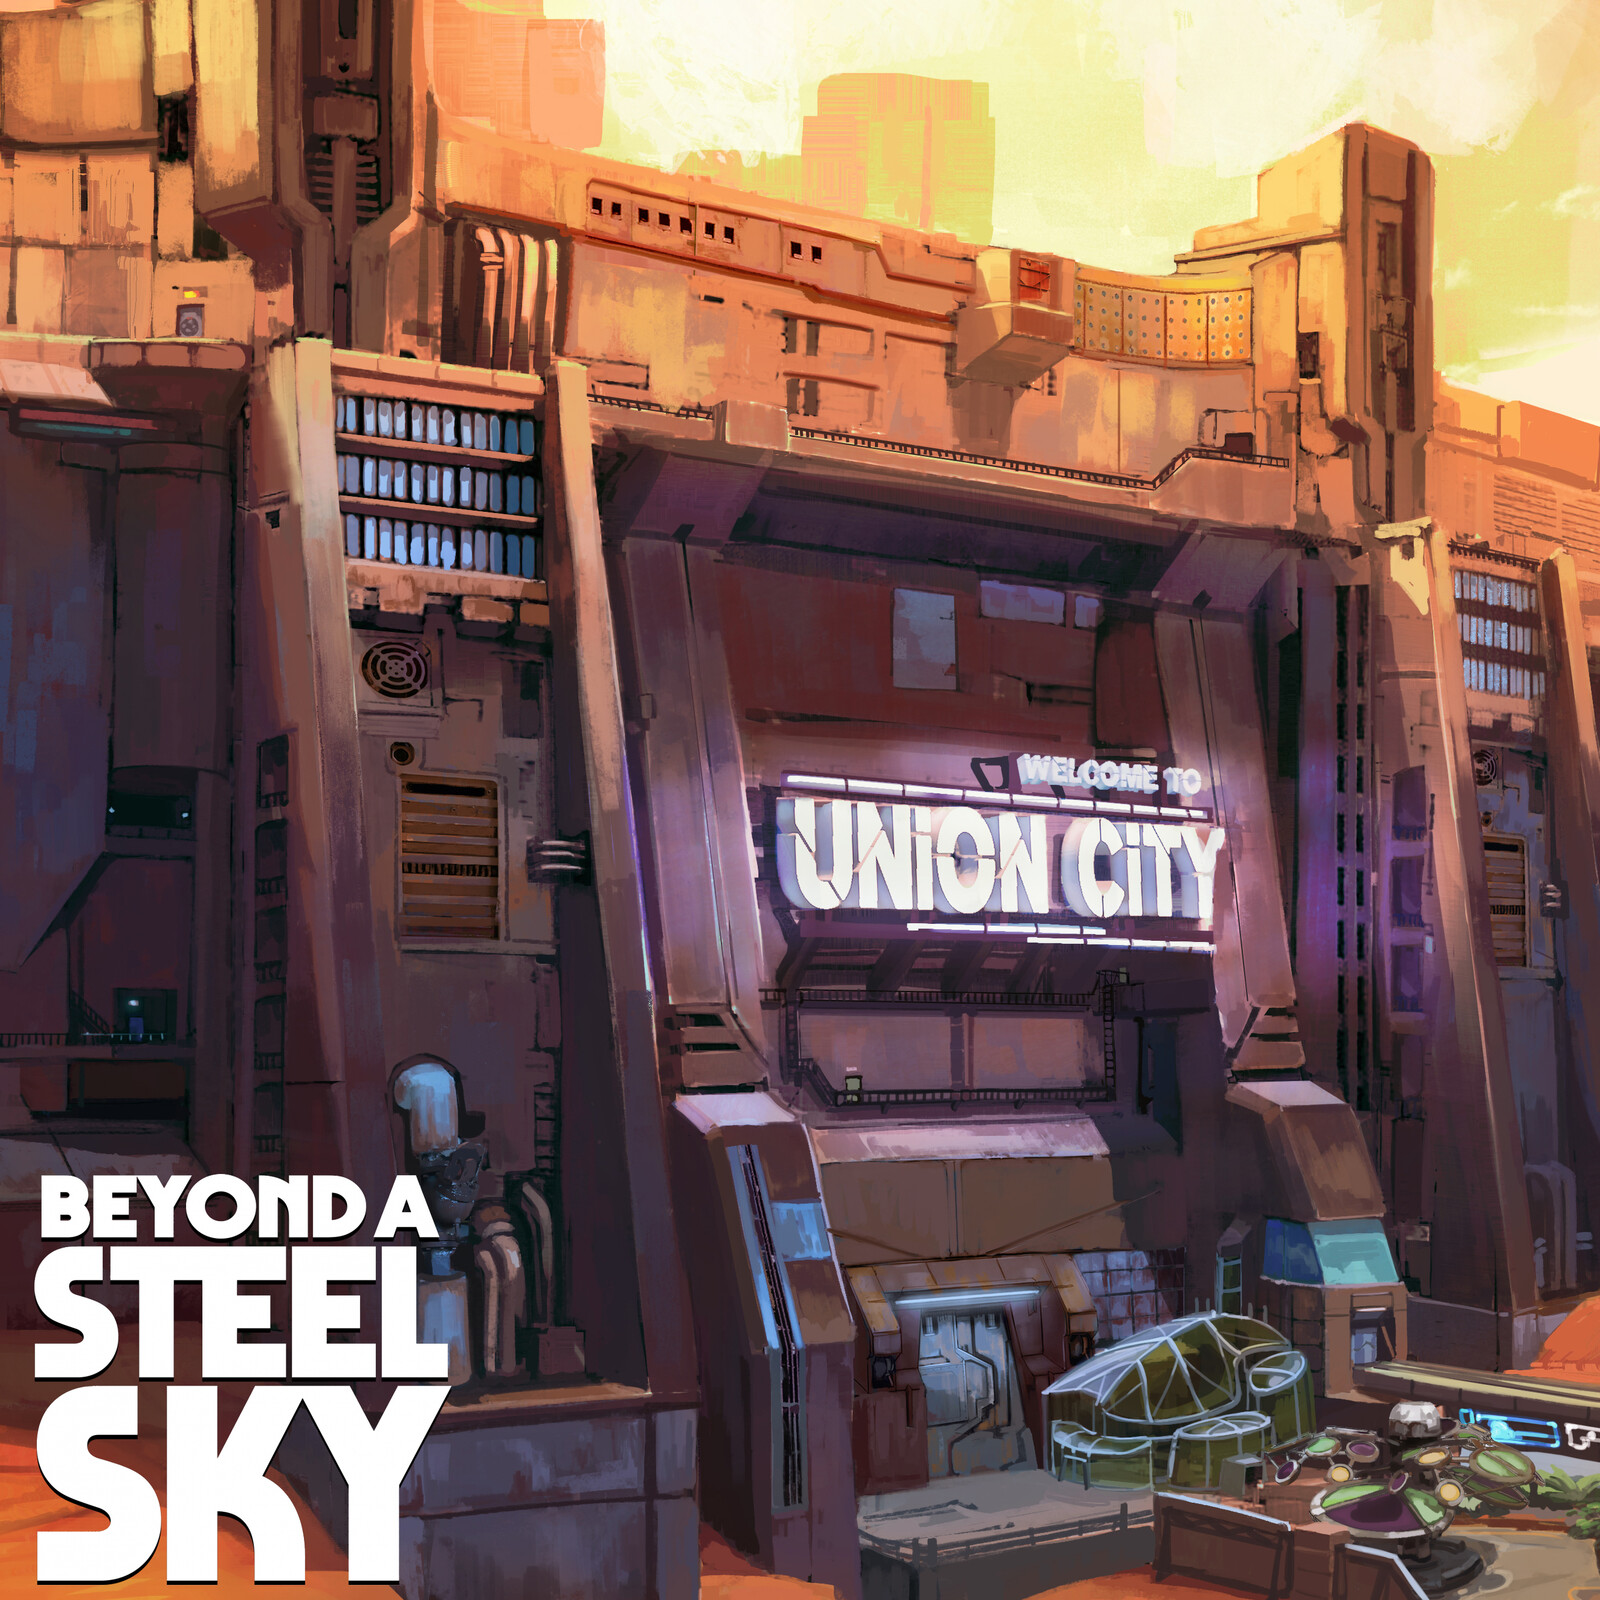 BEYOND A STEEL SKY: Union City Walls